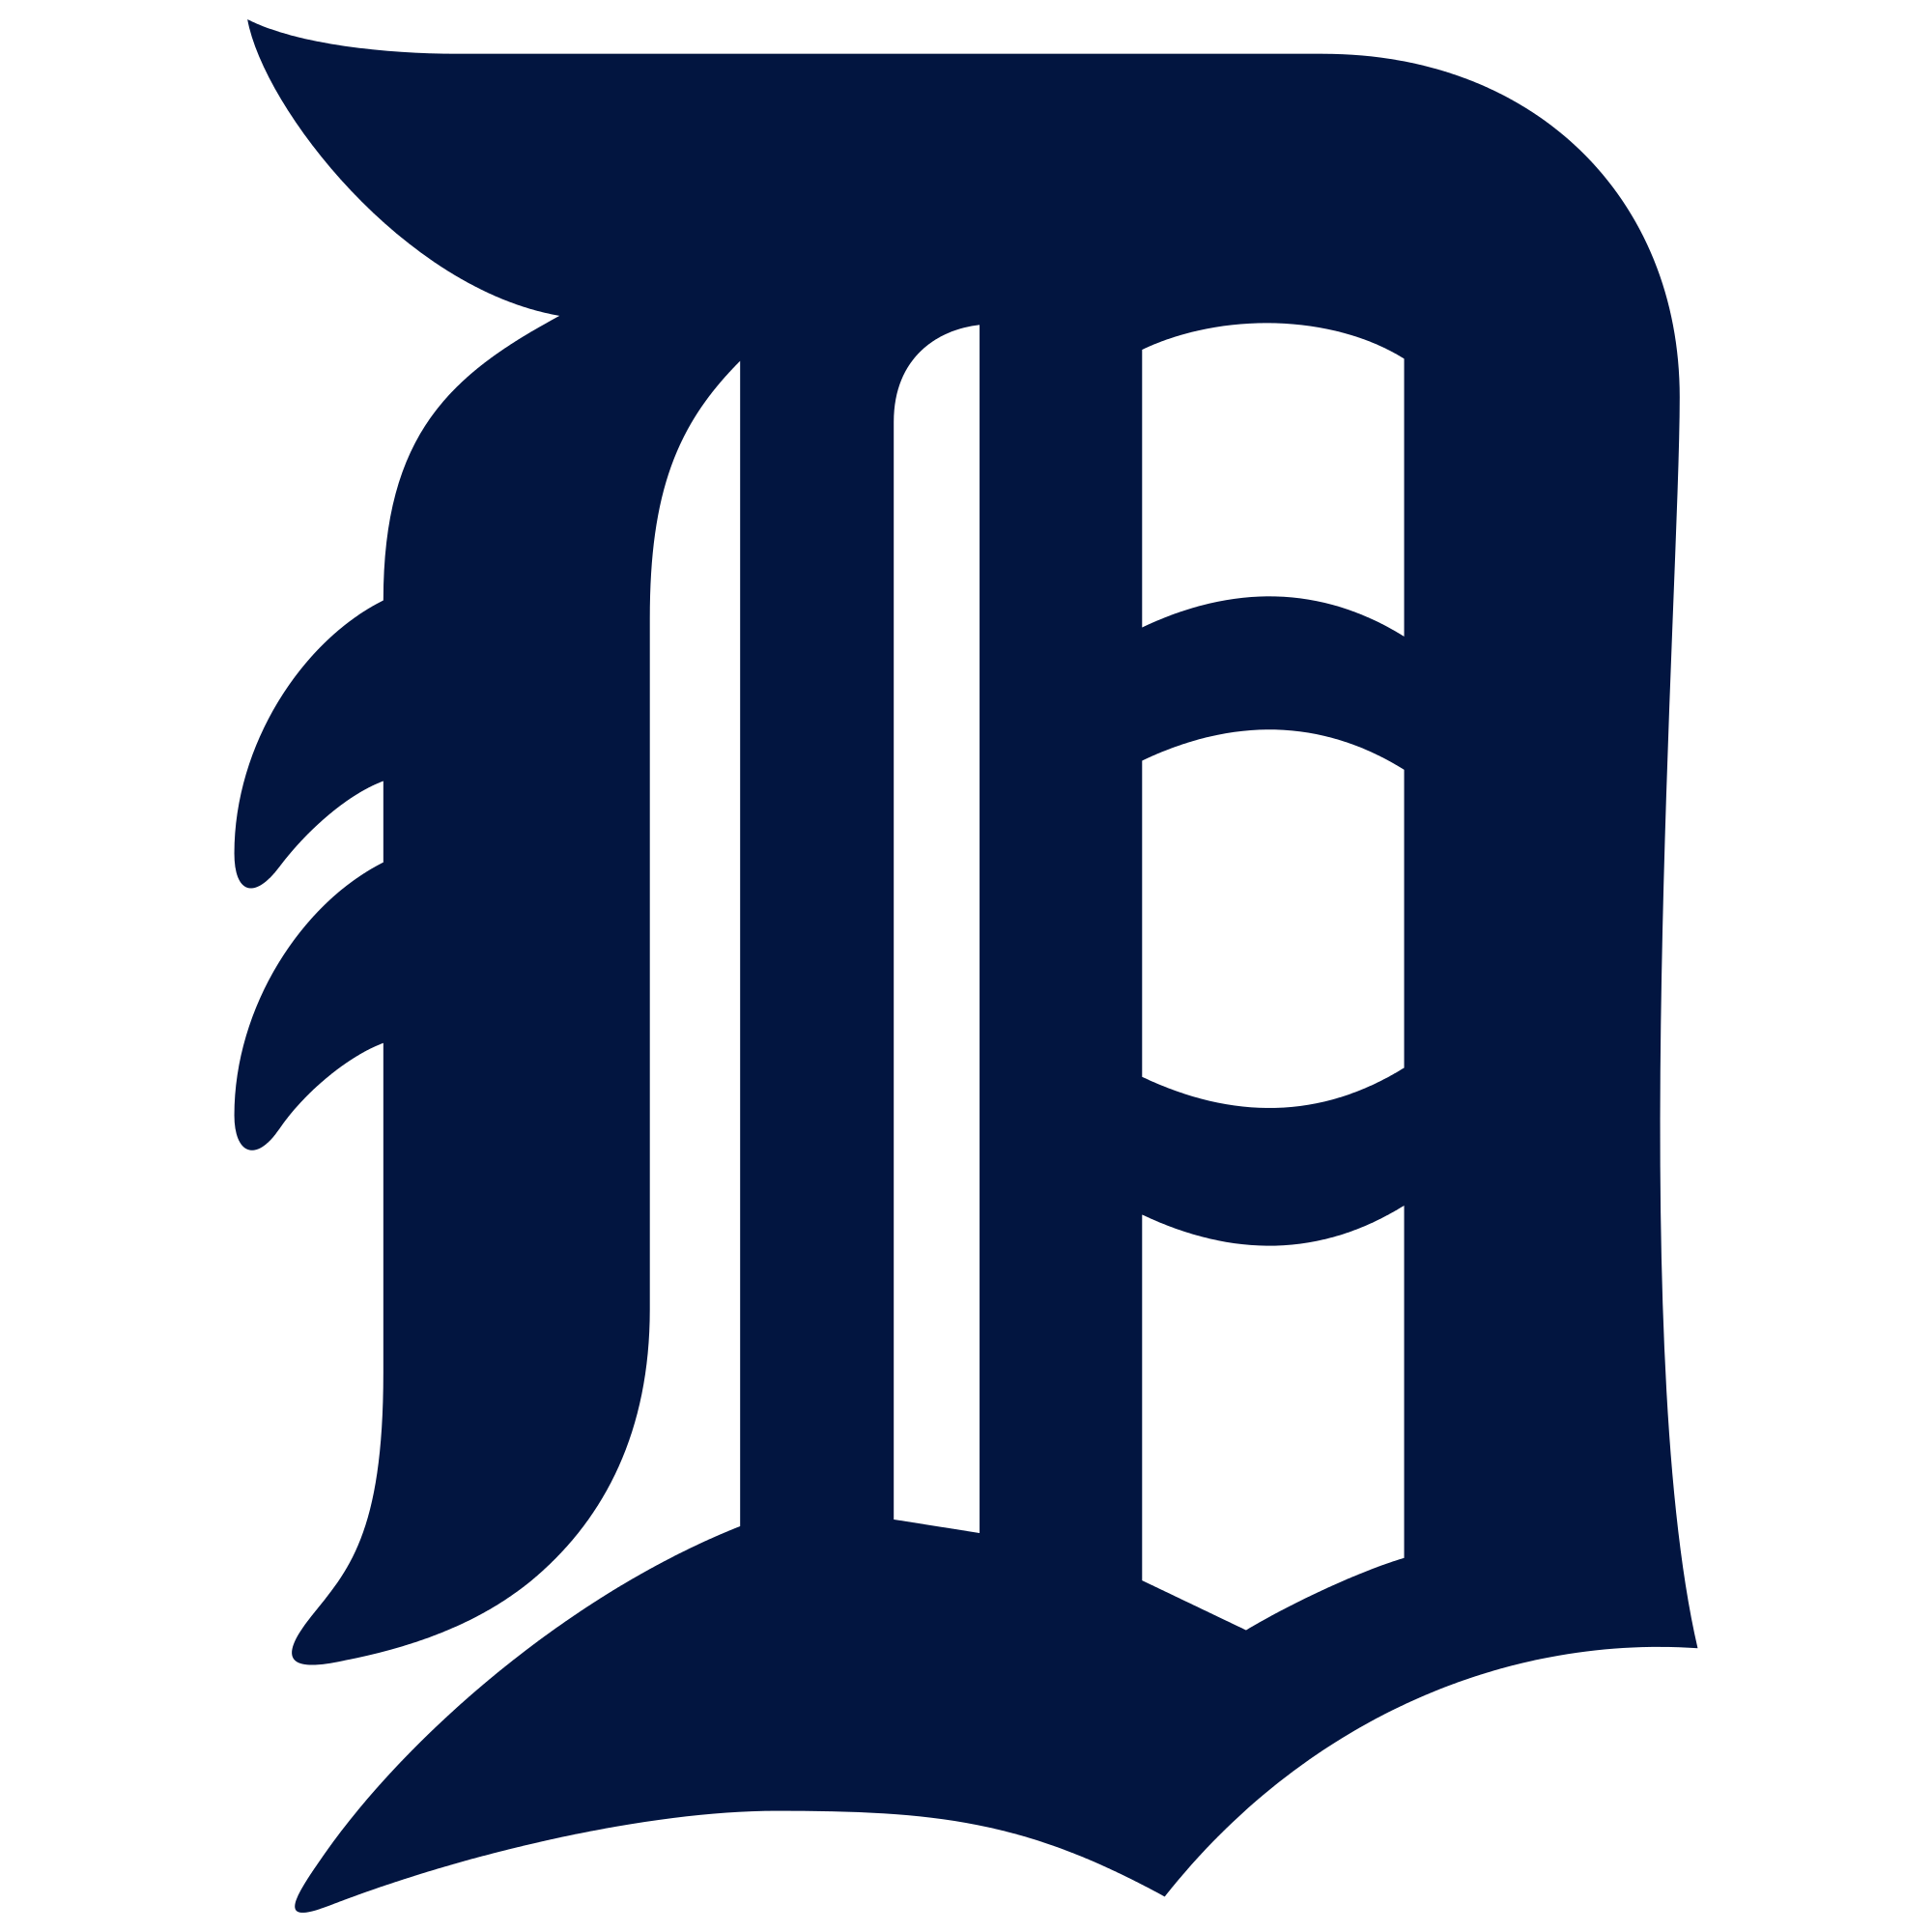 Transparent d text. File detroit tigers textlogo